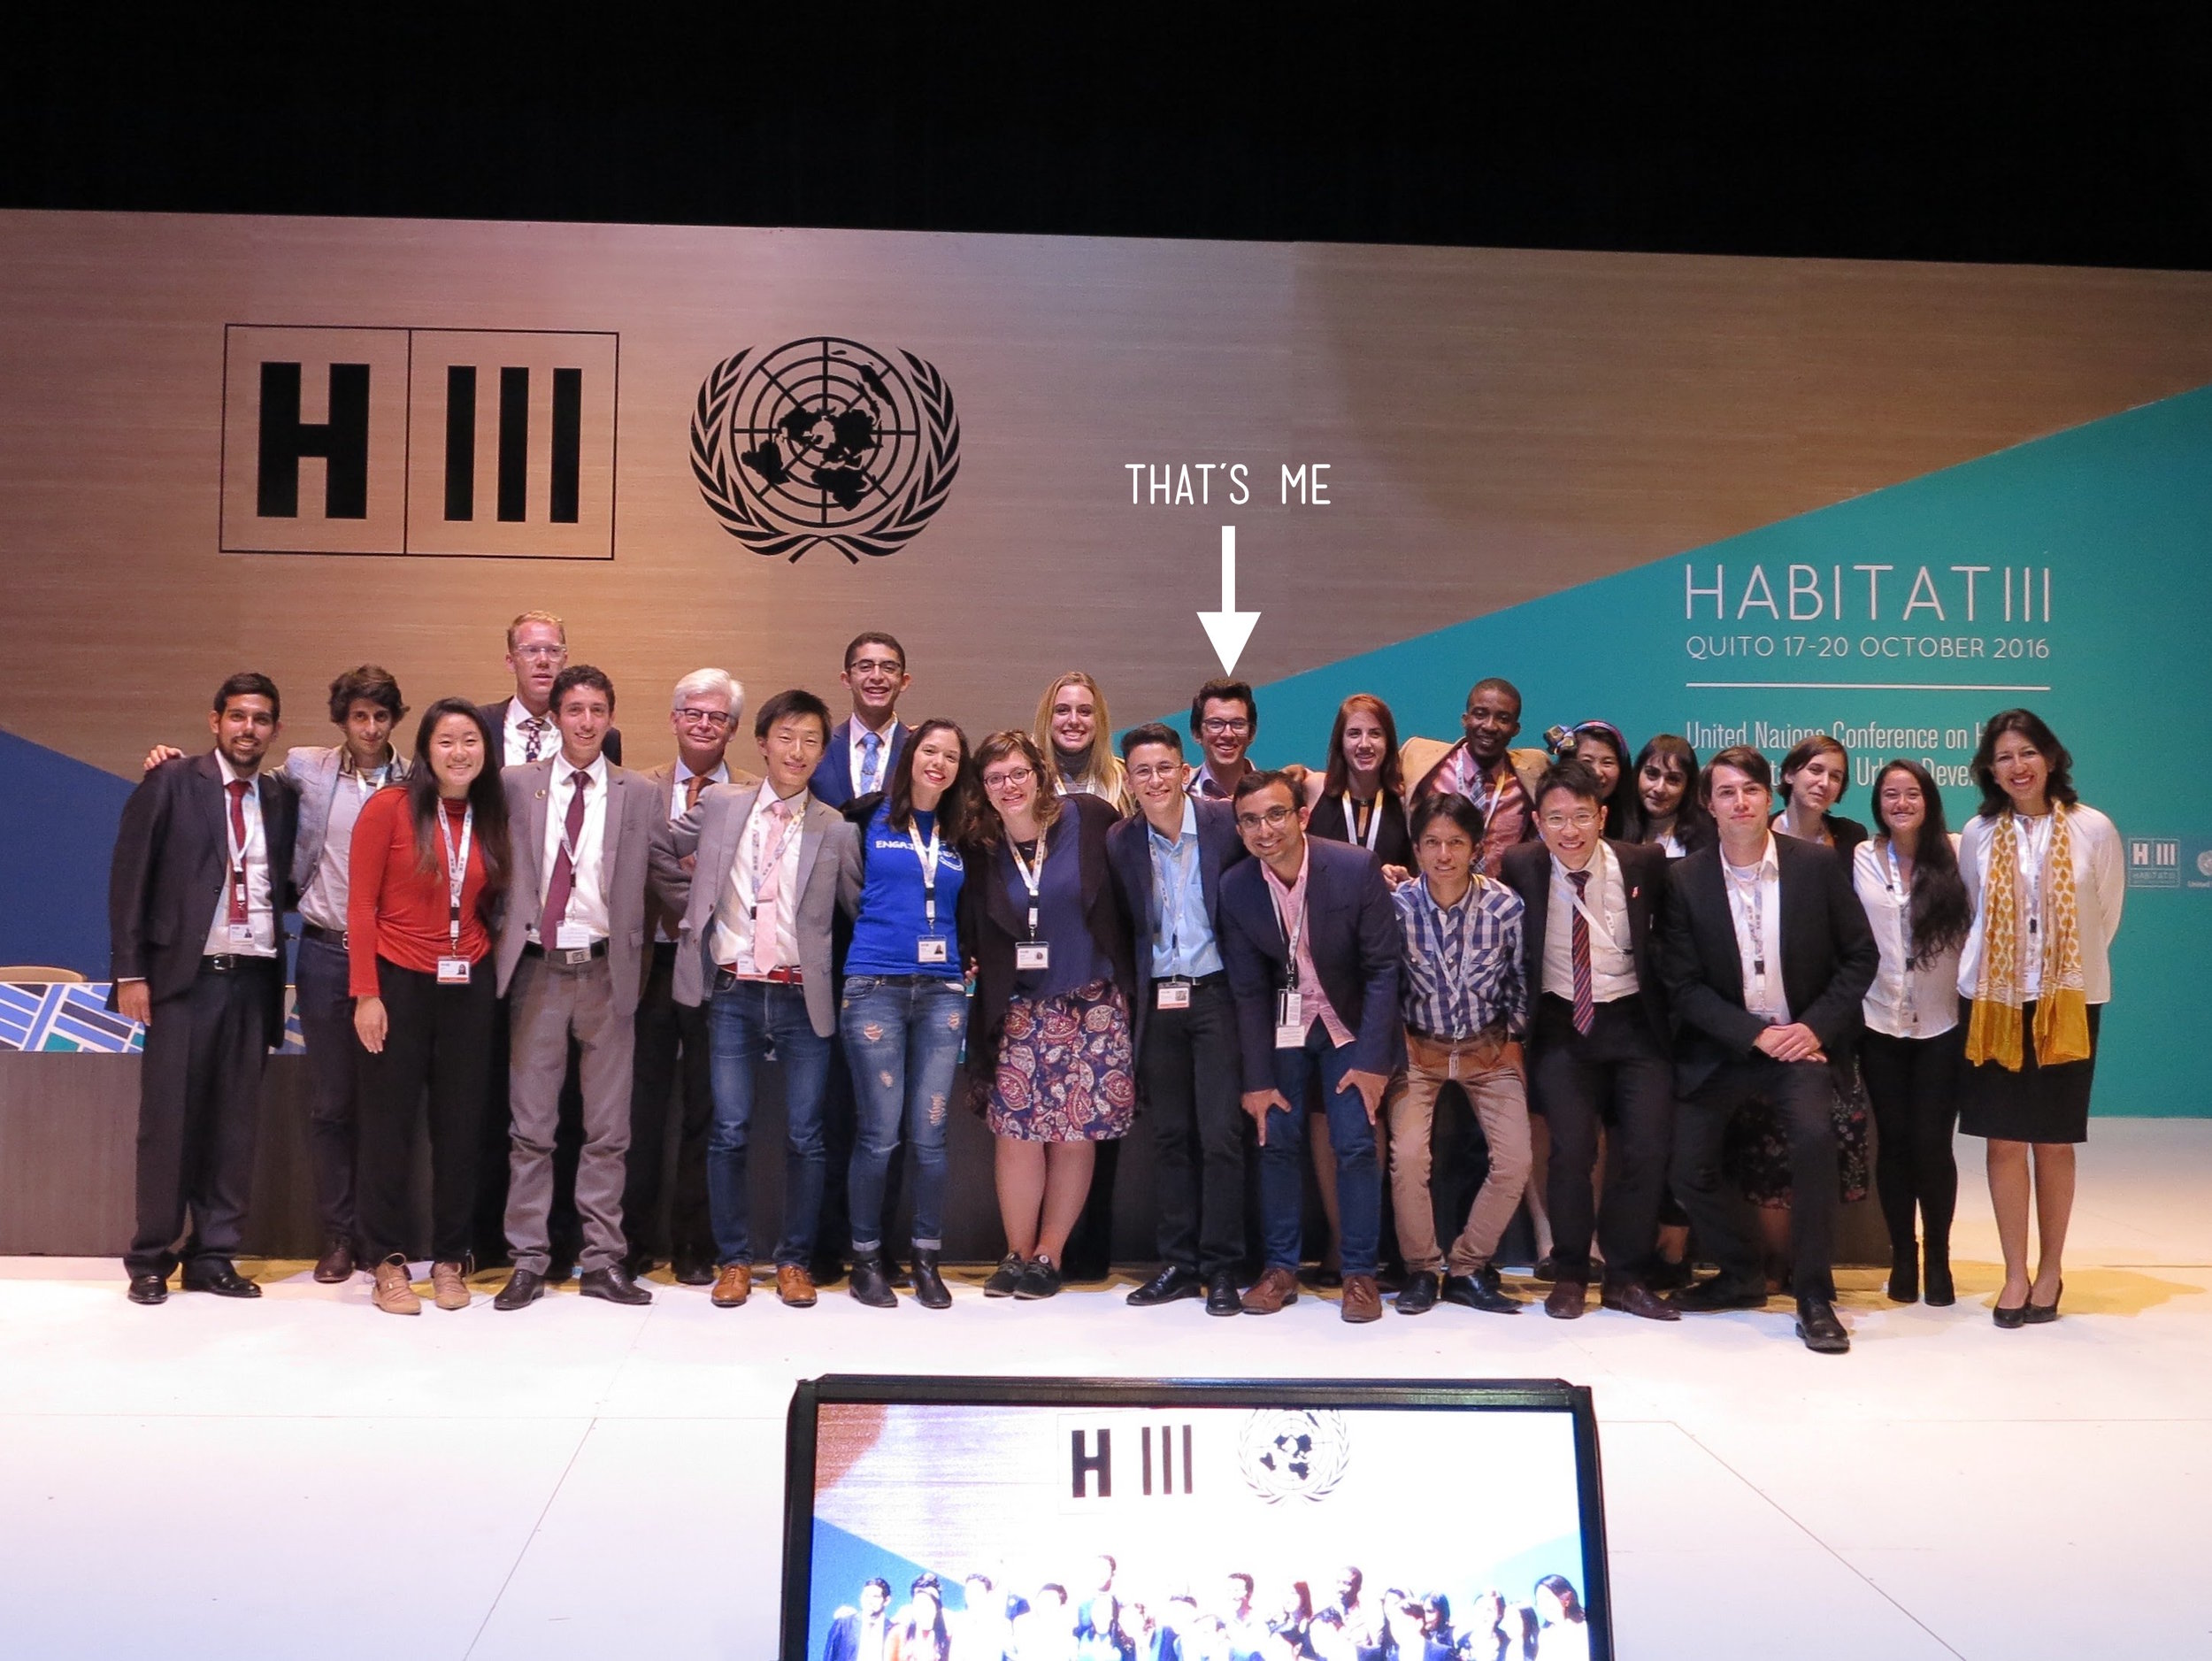 A picture featuring most of the  United Nations Major Group for Children and Youth  delegation at Habitat III, including myself.